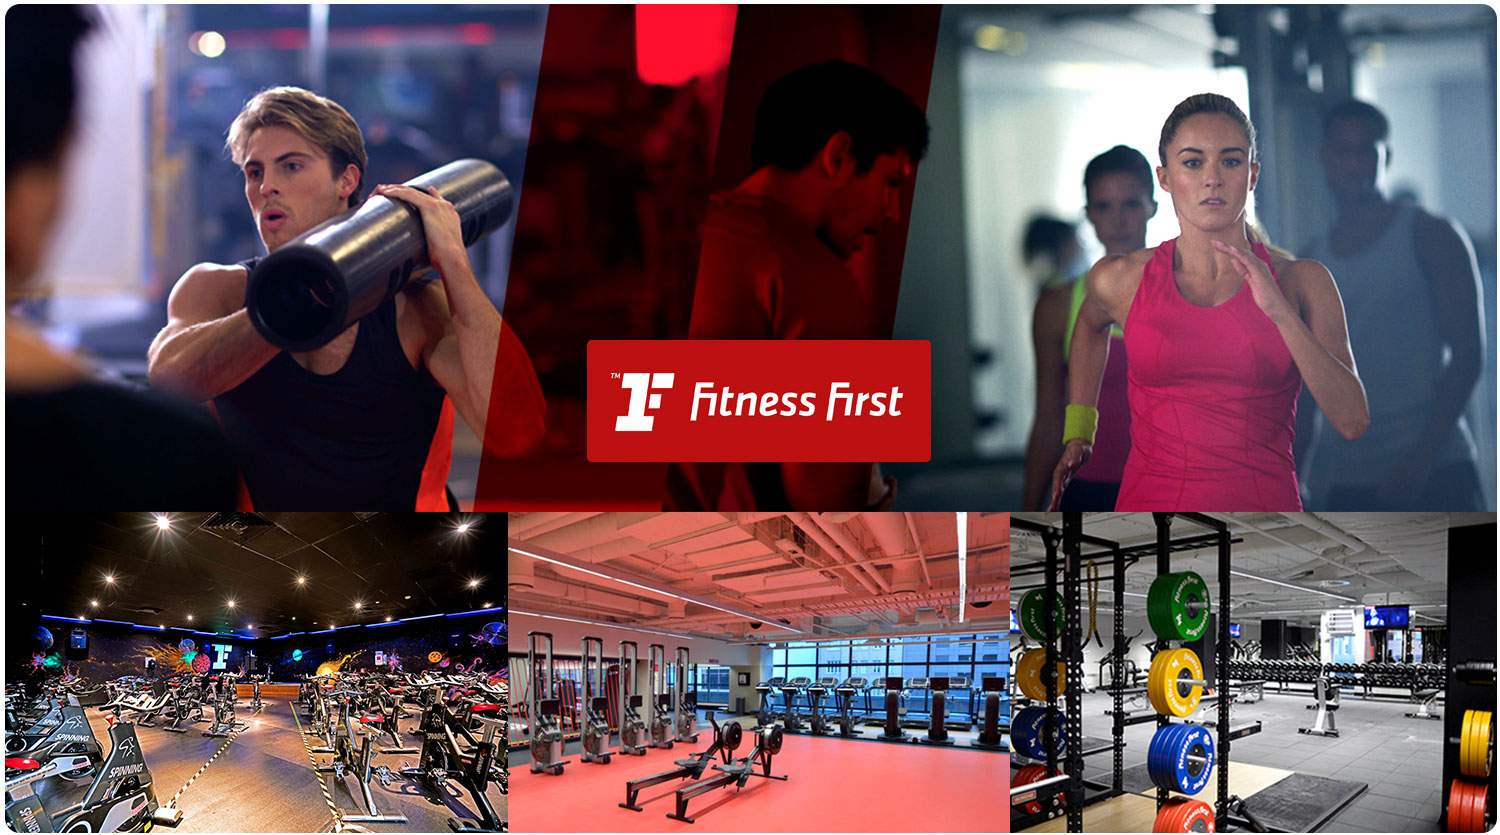 Start your Fitness Journey with Fitness First with only $9.95 for 1 week at Fitness First Rockdale. Experience our first class gym and freestyle classes inc. Yoga, Pilates, HIIT, Zumba, Les Mills and more. Take the first step with Fitness First Rockdale.